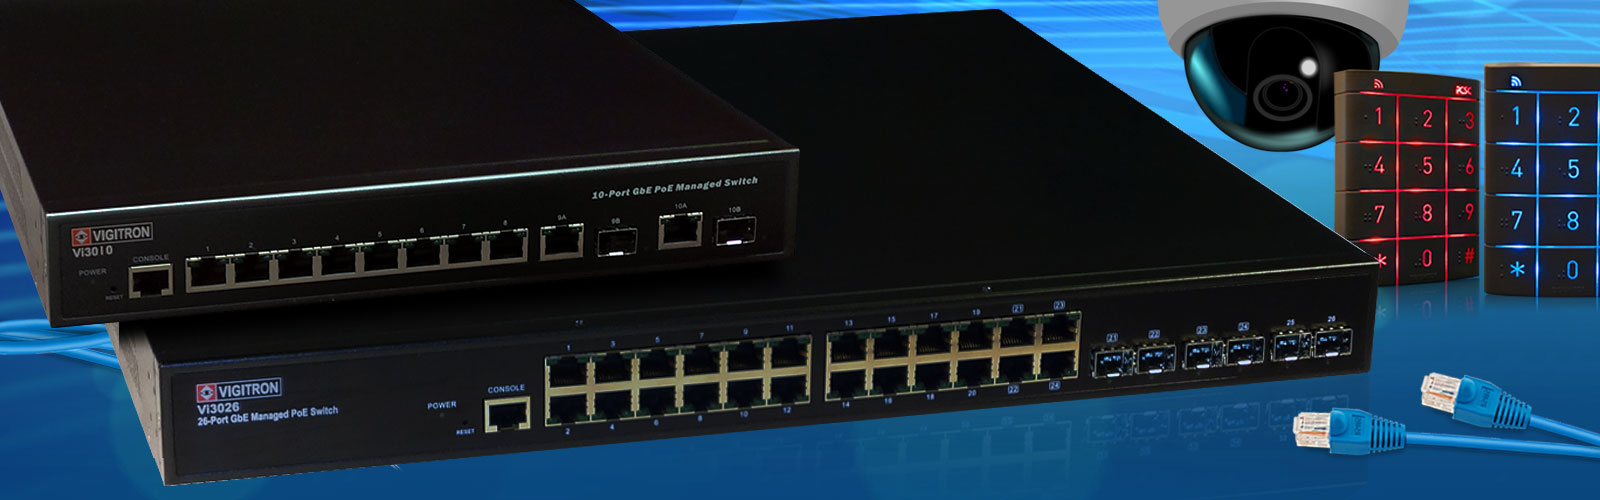 Offering Affordable Quality PoE Solutions